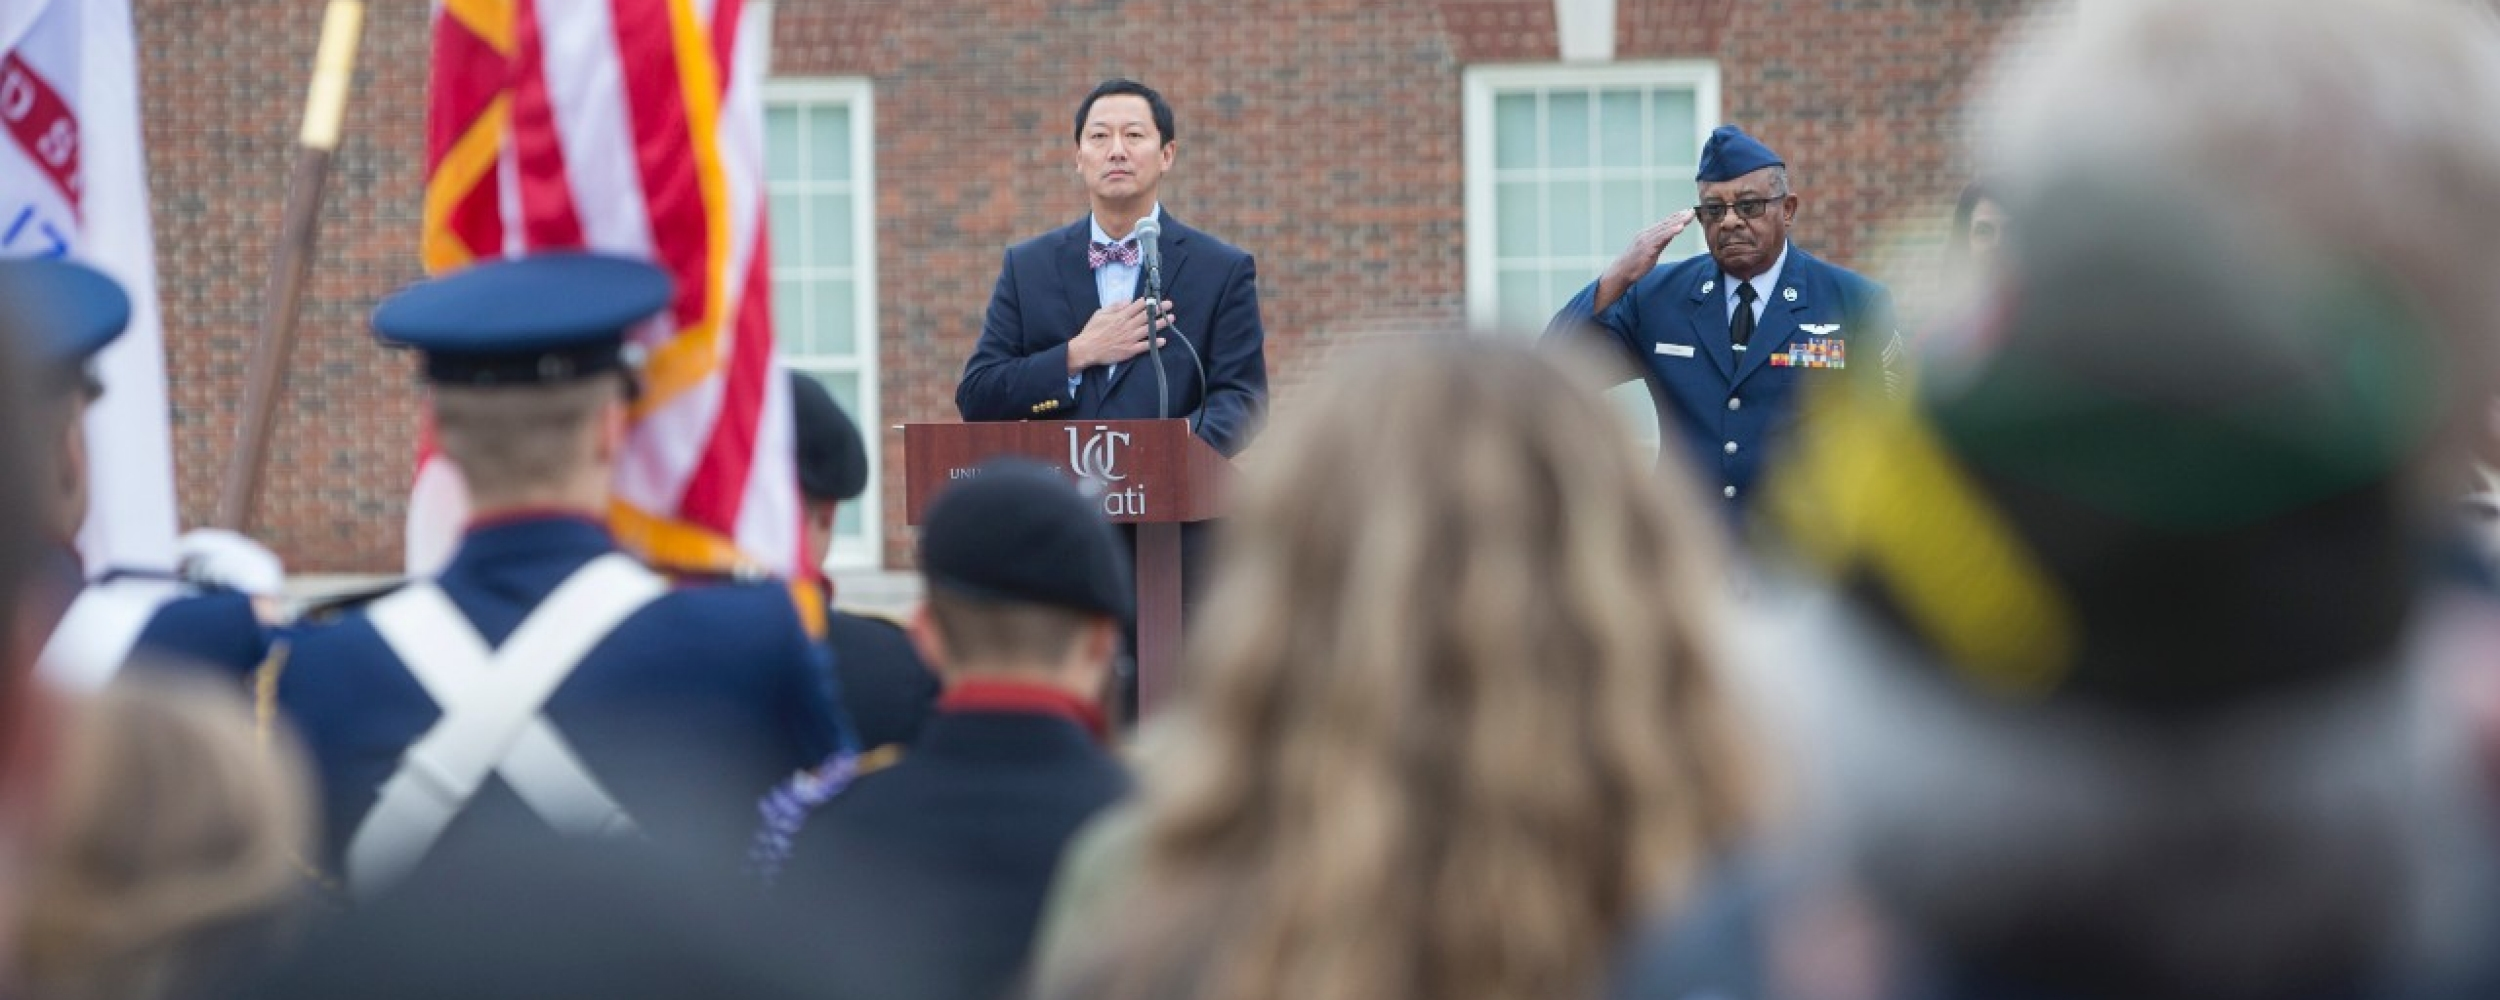 UC Veterans Day Ceremony